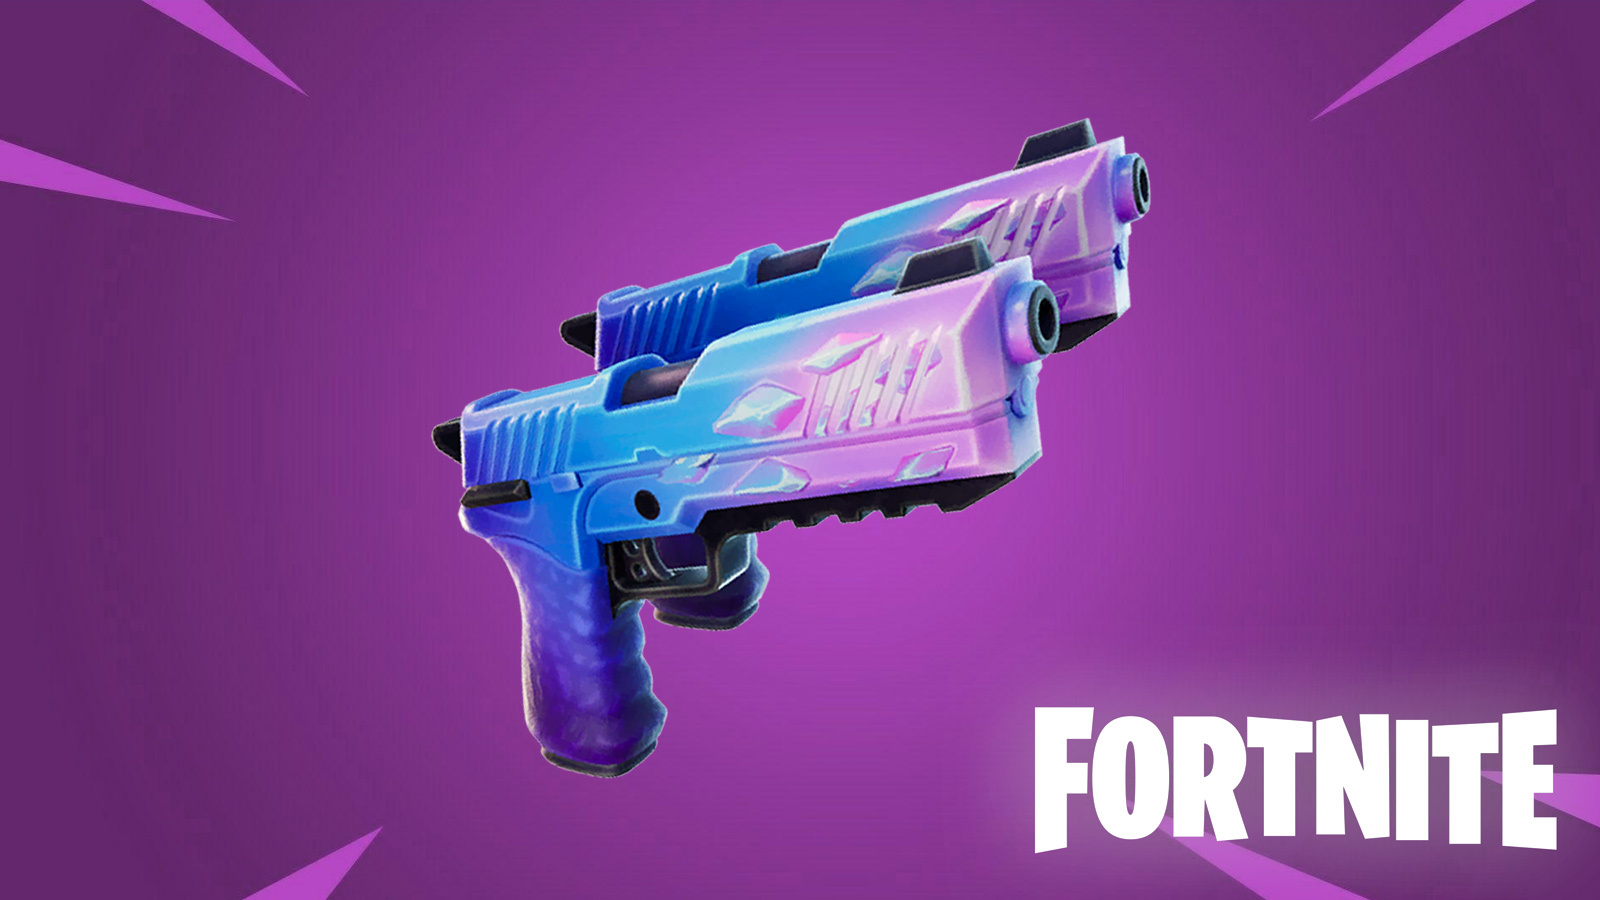 Fortnite Season 7 Weapons Guide: Vaulted And Unvaulted ...